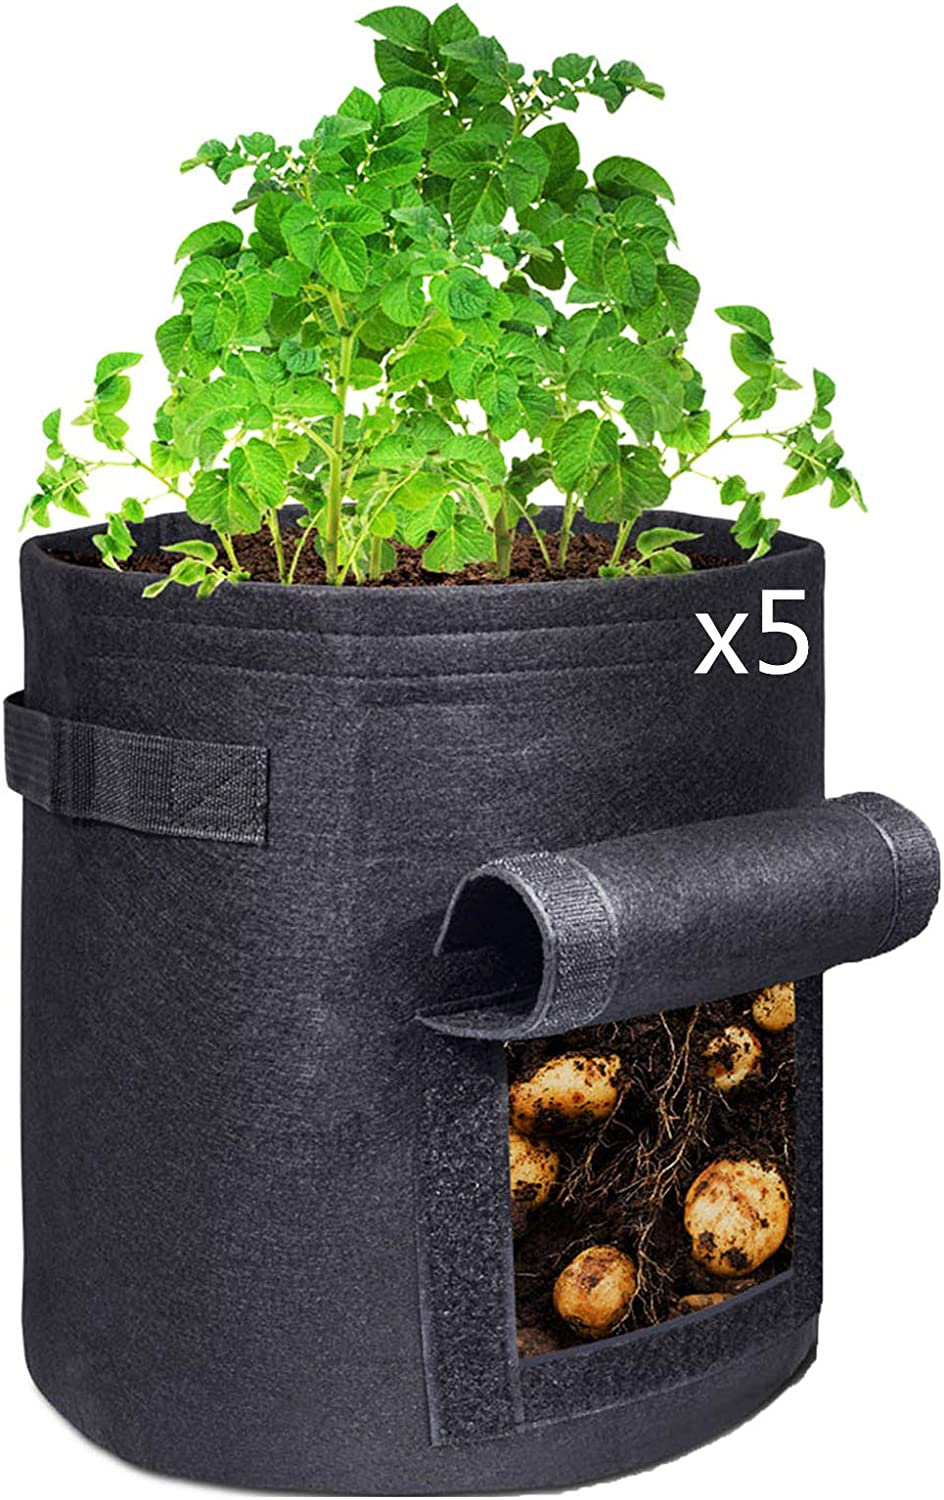 SimpleLand 5-Pack 4 Gallon Grow Bags, Heavy Duty 400GSM Thickened Grow Bags, Non-Woven Fabric Pots with Handles and Window, Felt Pots for Plants Gardening Vegetable Container for Home